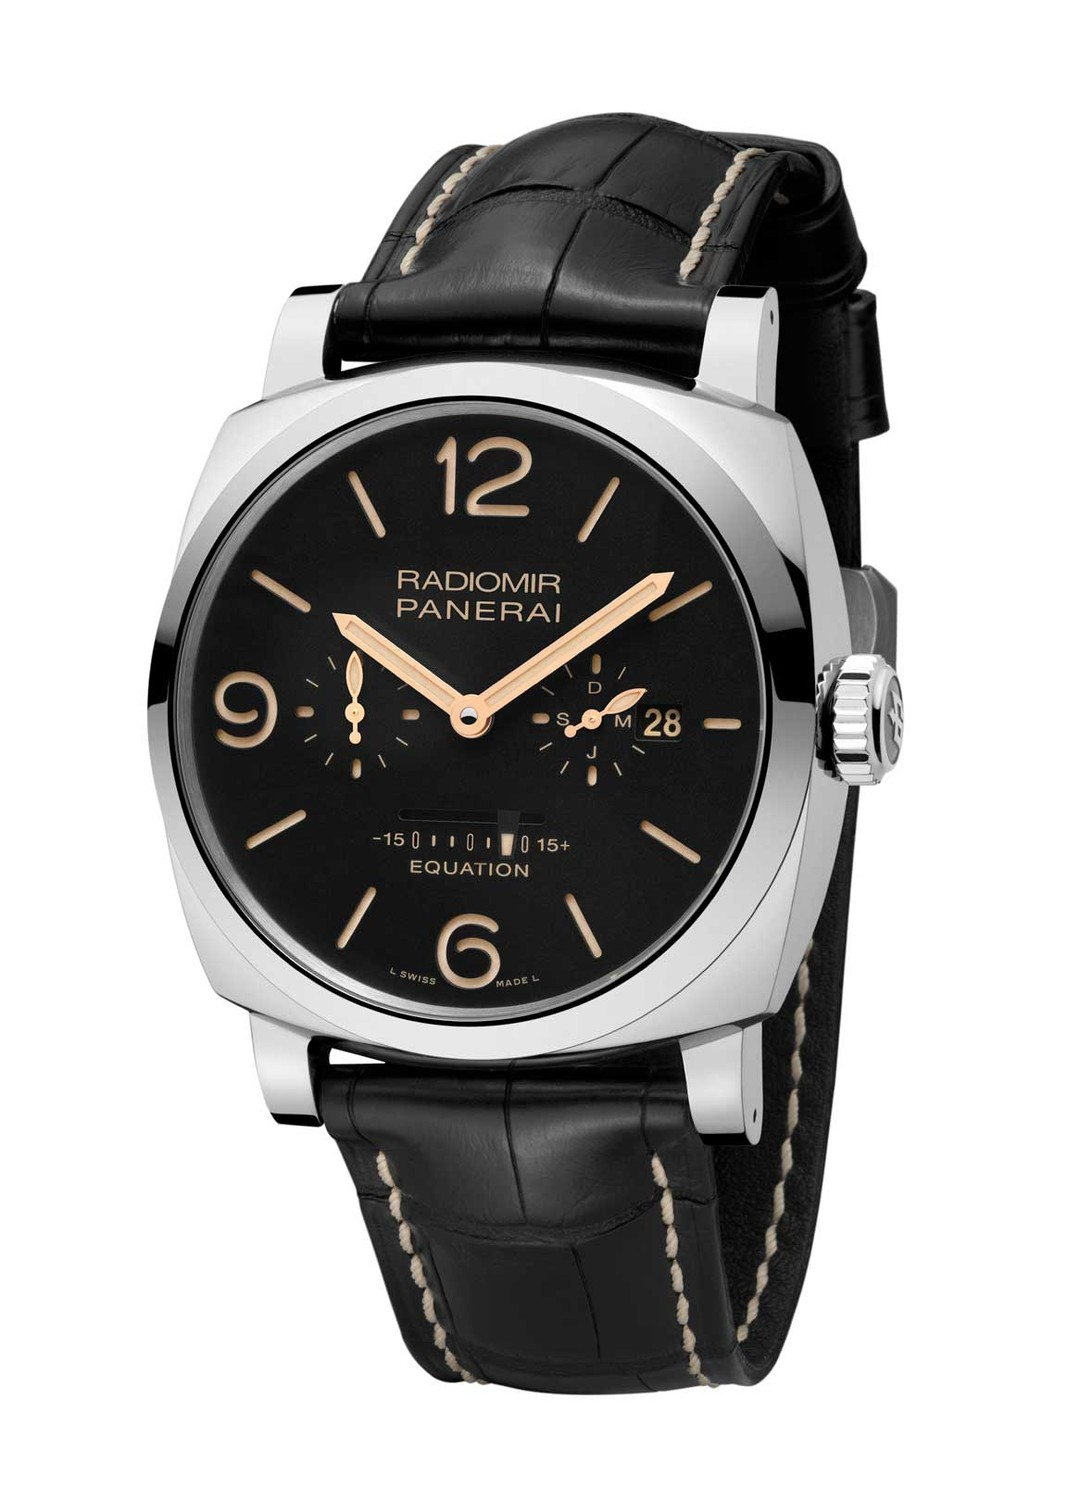 Retailed to the public since 1993, the Panerai Radiomir and Luminor models are so popular that they have their very own fan club of Paneristi aficionados. Pictured here, the new Panerai Radiomir 1940 Equation of Time 8-days in a 48mm stainless steel case.